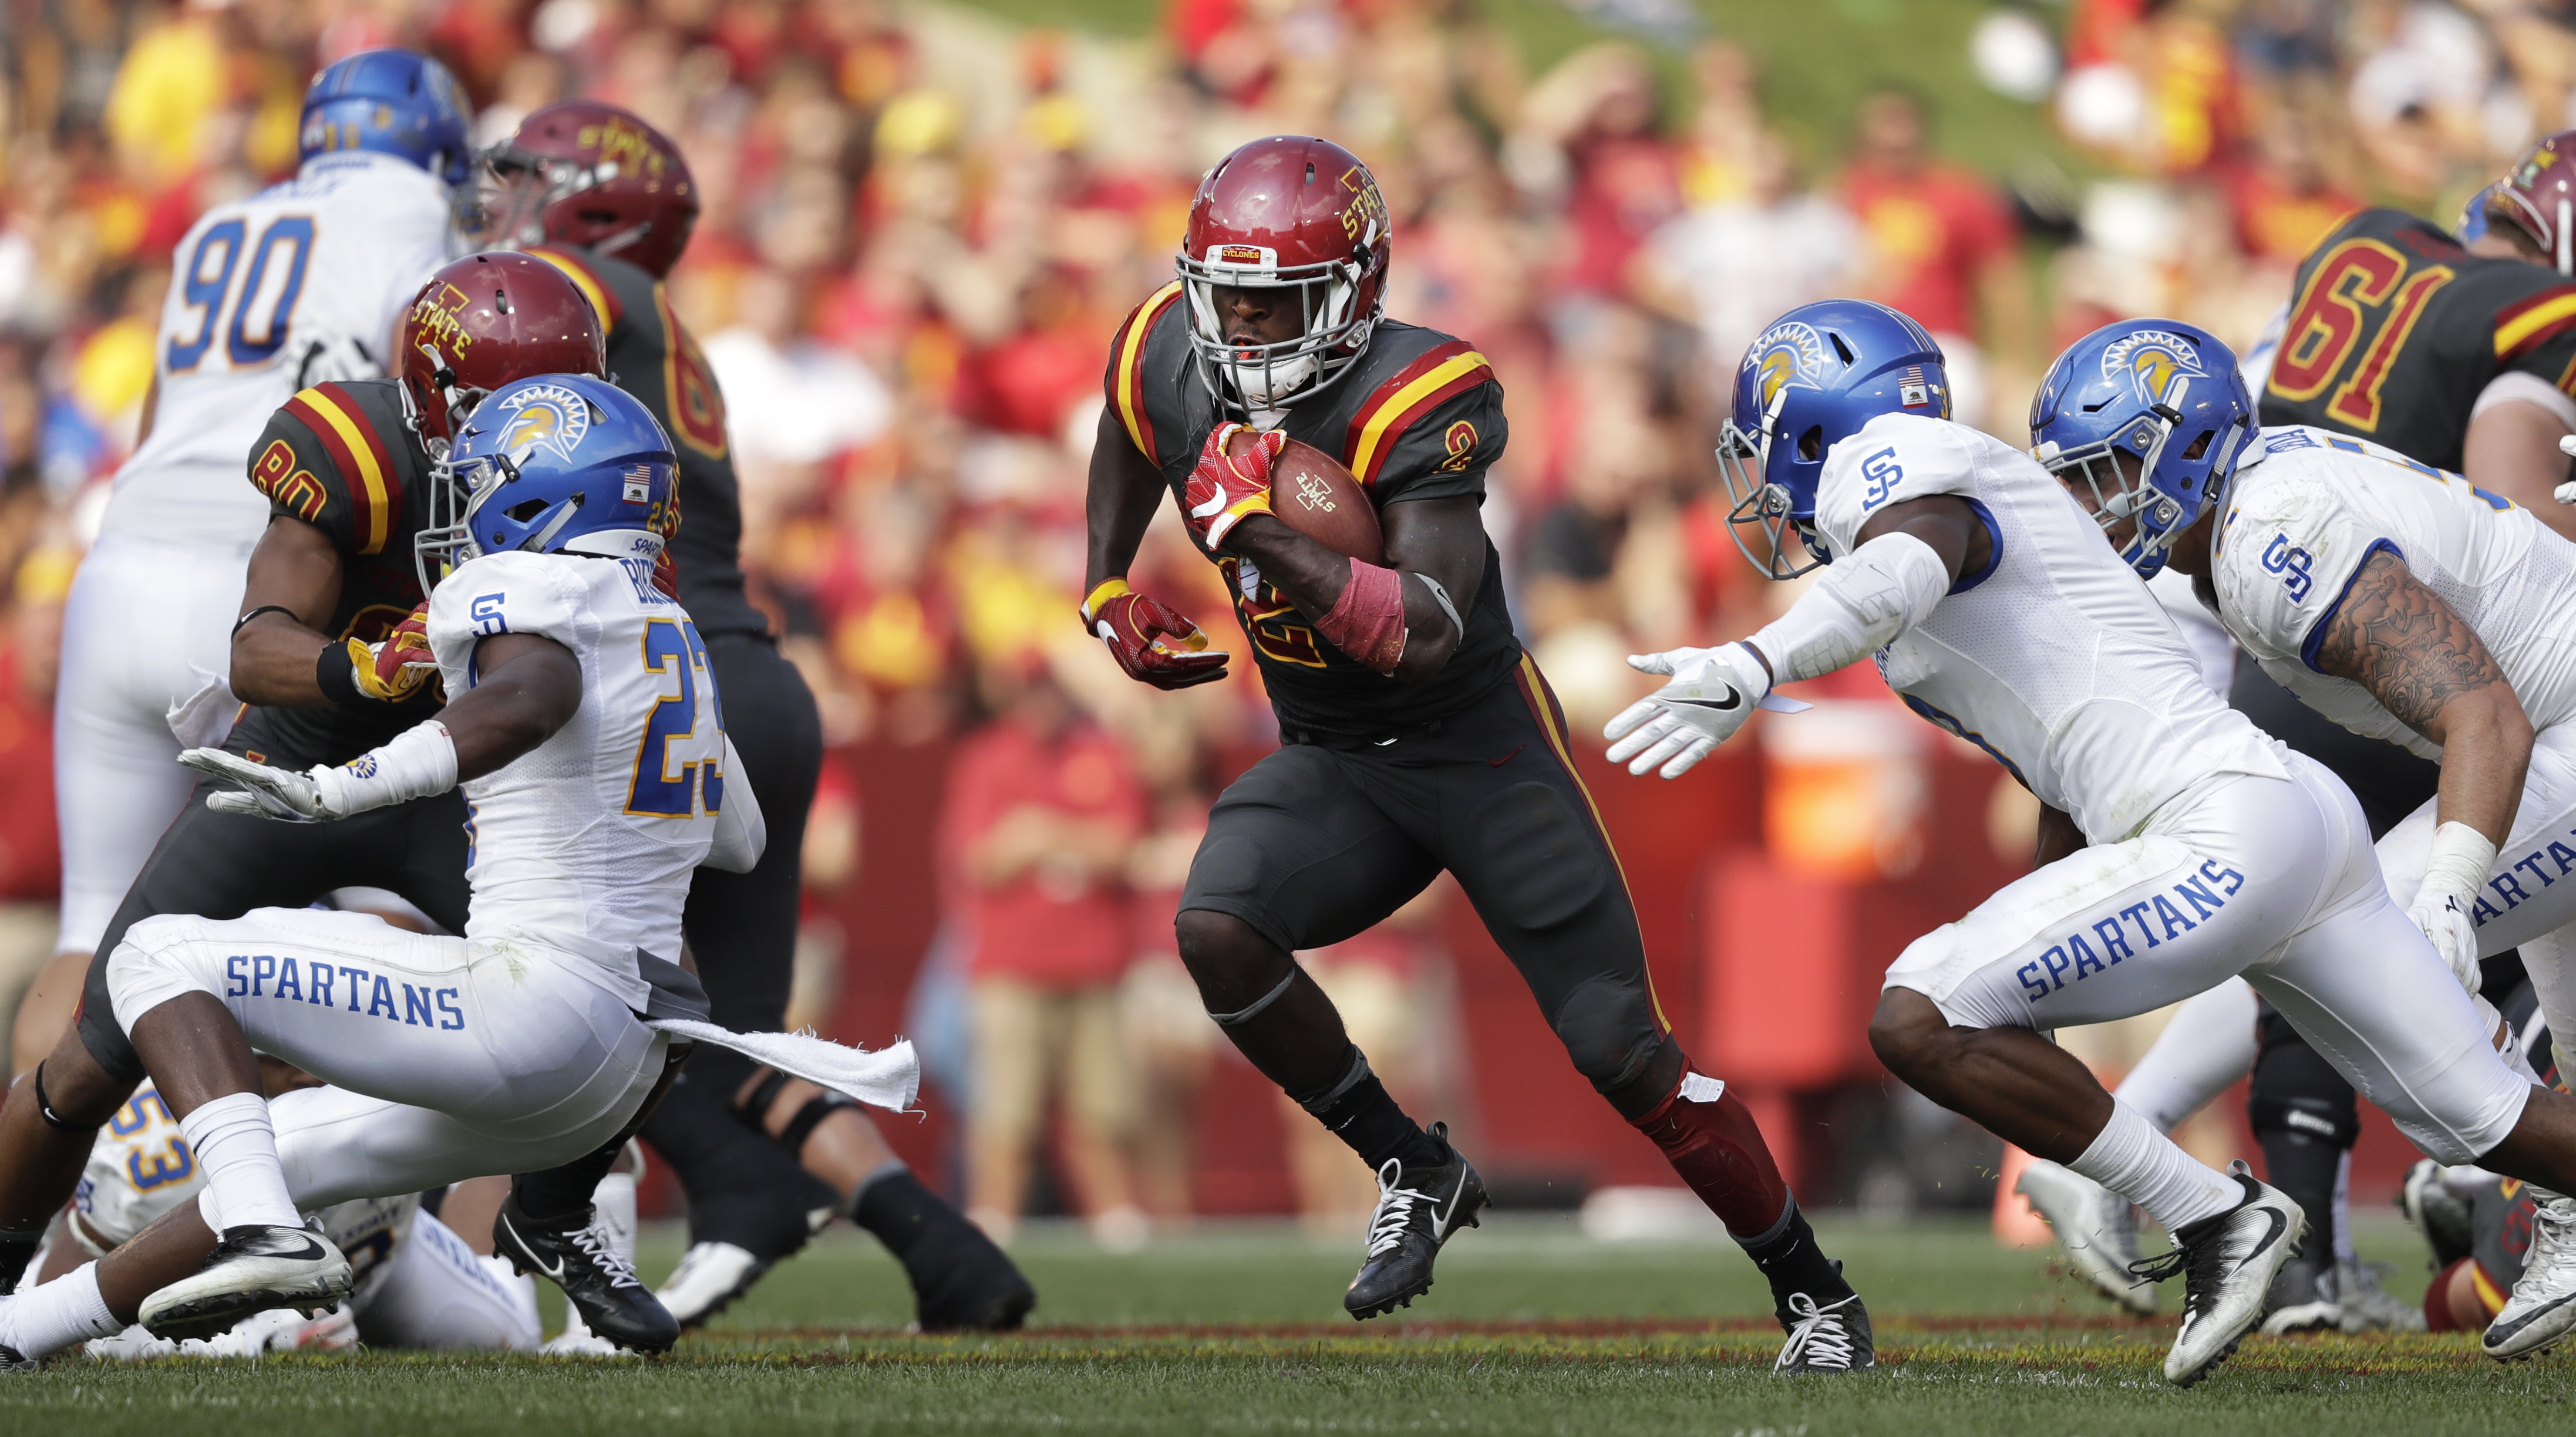 Iowa State running back Mike Warren (2) runs up field during the second half of an NCAA college football game against San Jose State, Saturday, Sept. 24, 2016, in Ames, Iowa. Iowa State won 44-10. (AP Photo/Charlie Neibergall)